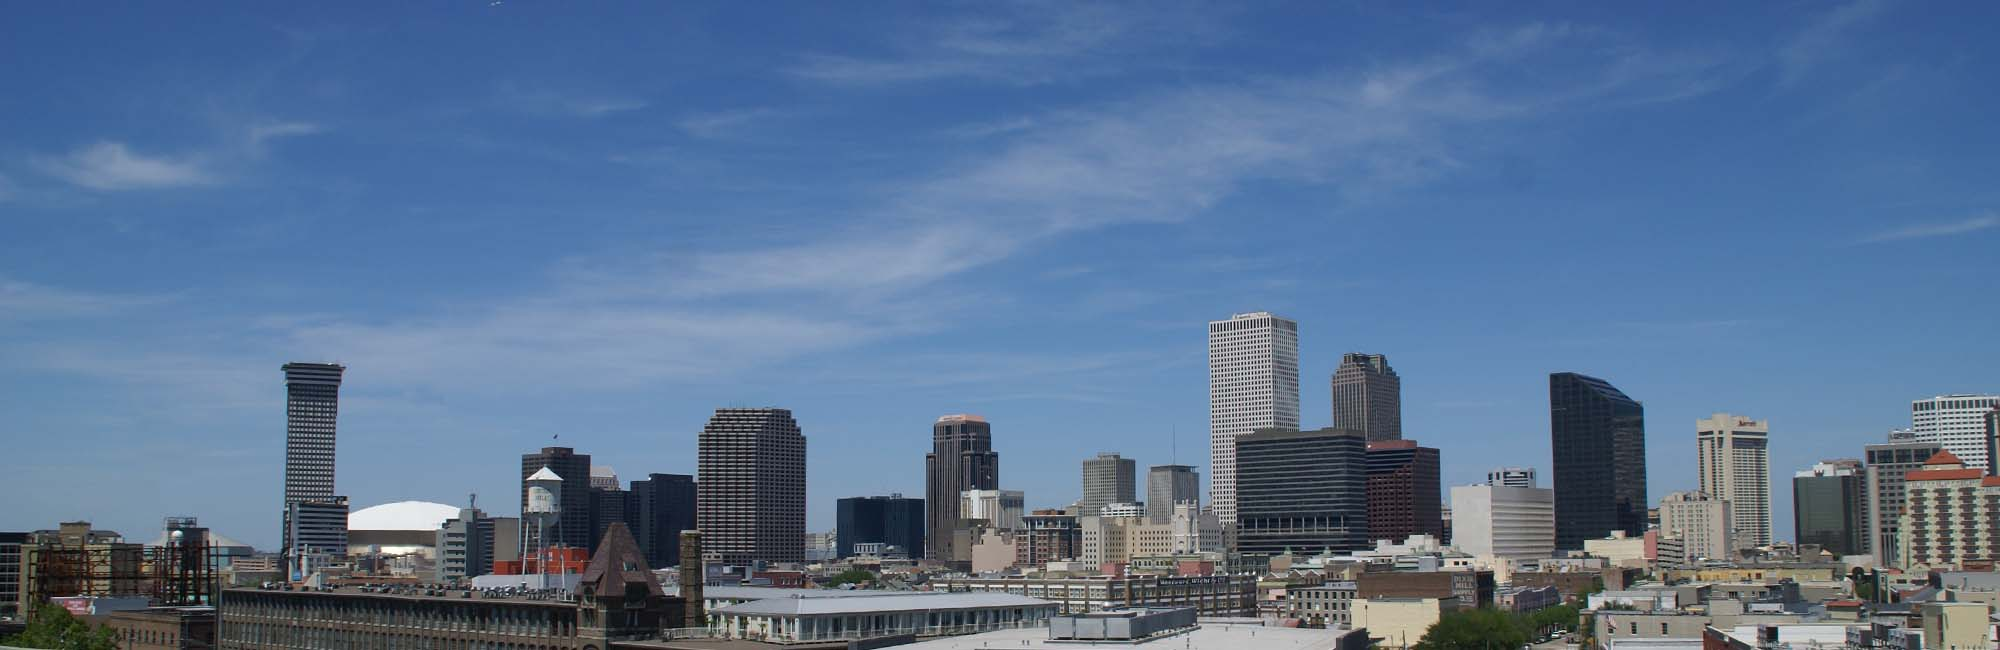 Skyline of Downtown New Orleans